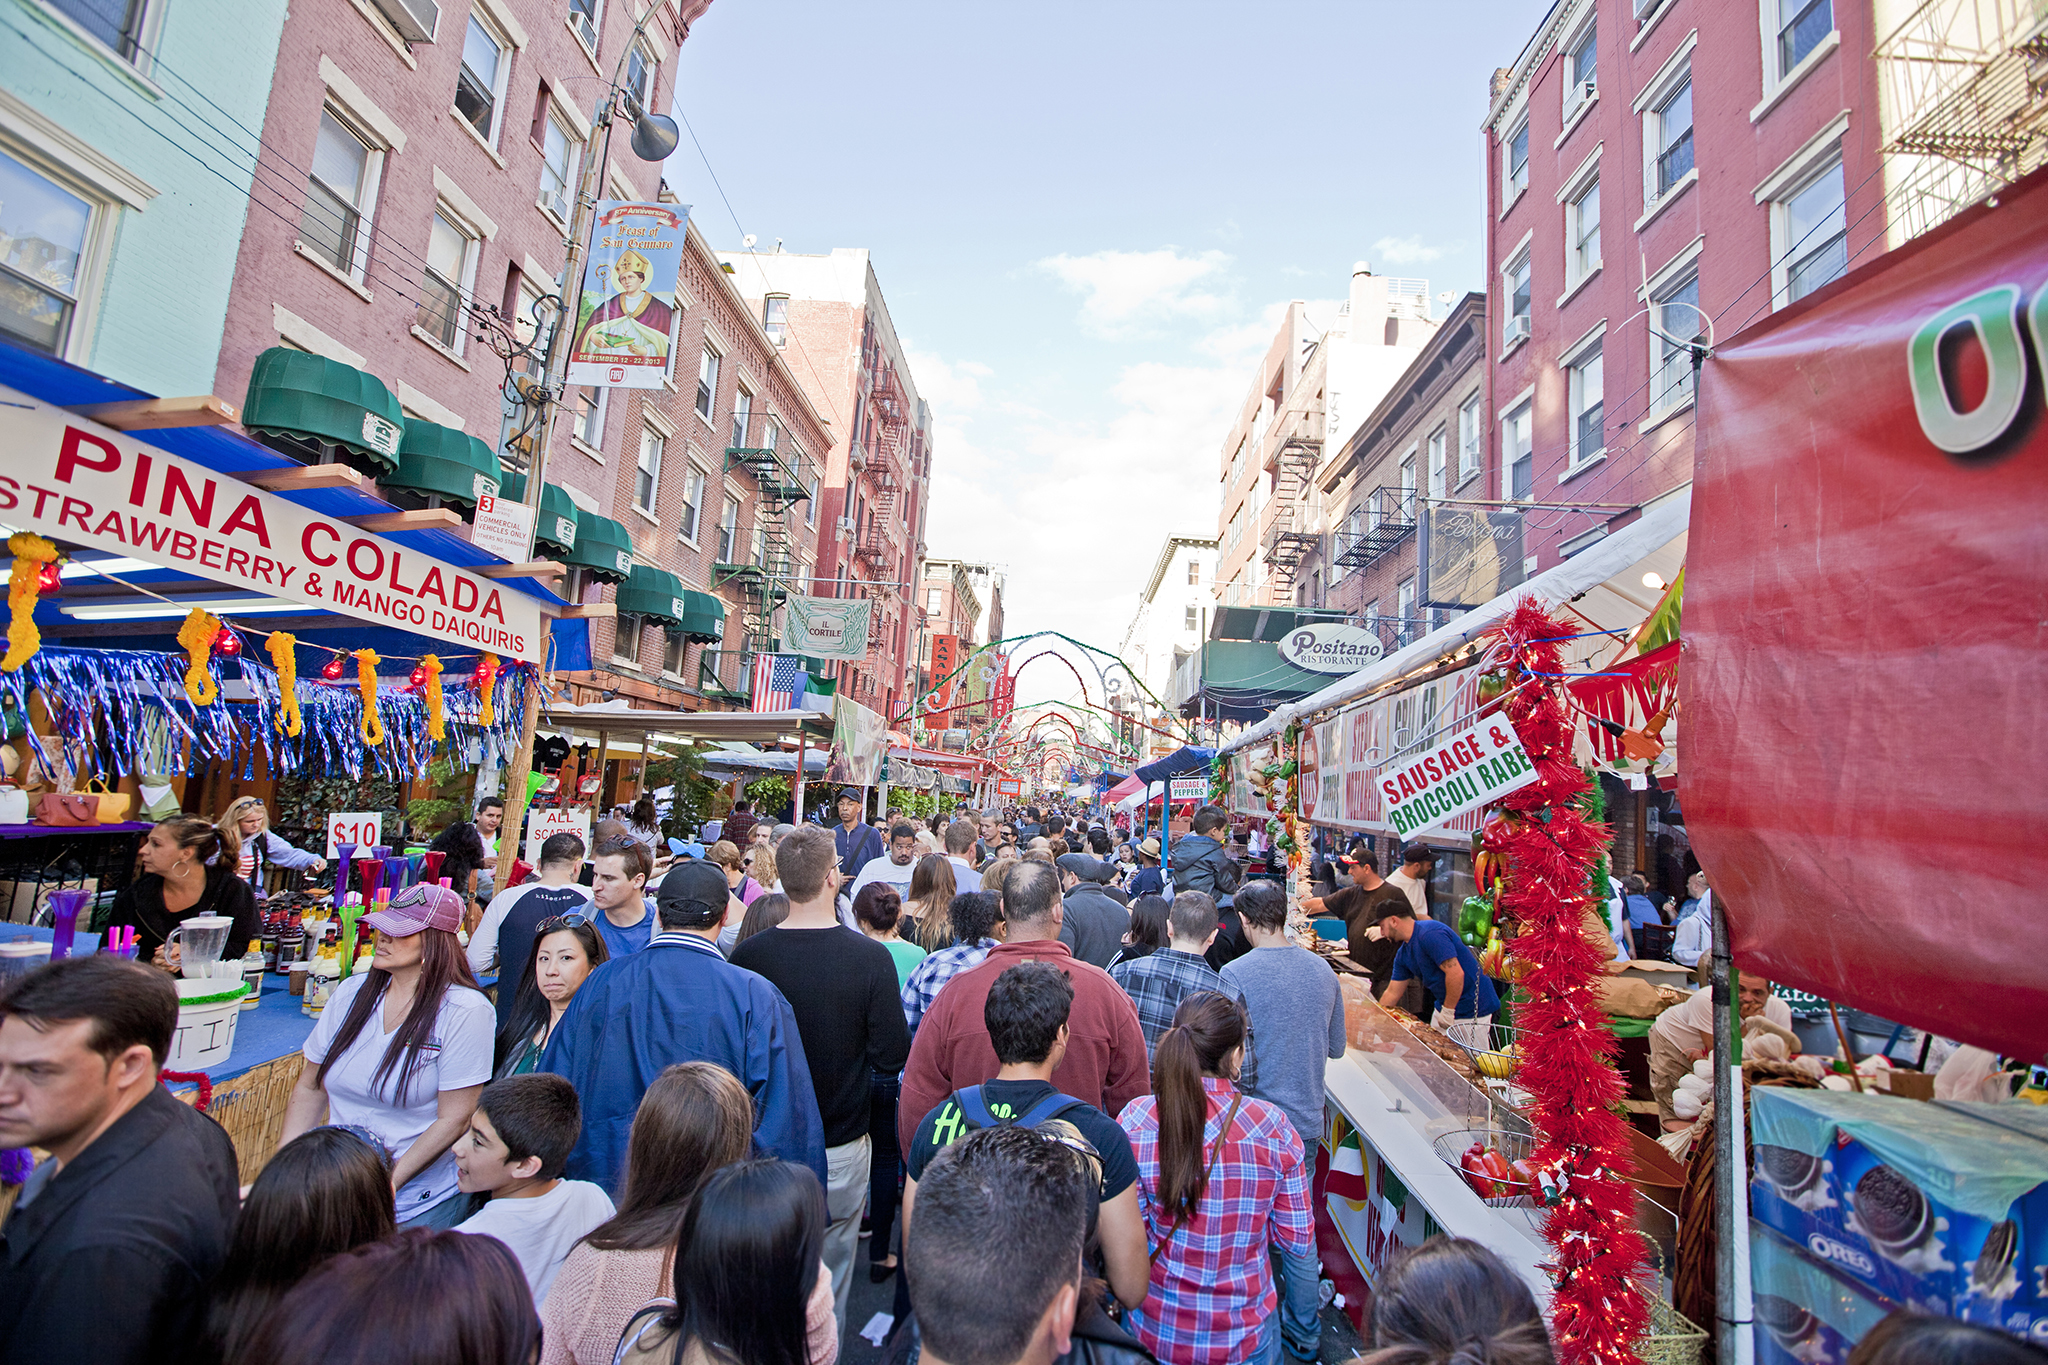 The Feast of San Gennaro guide